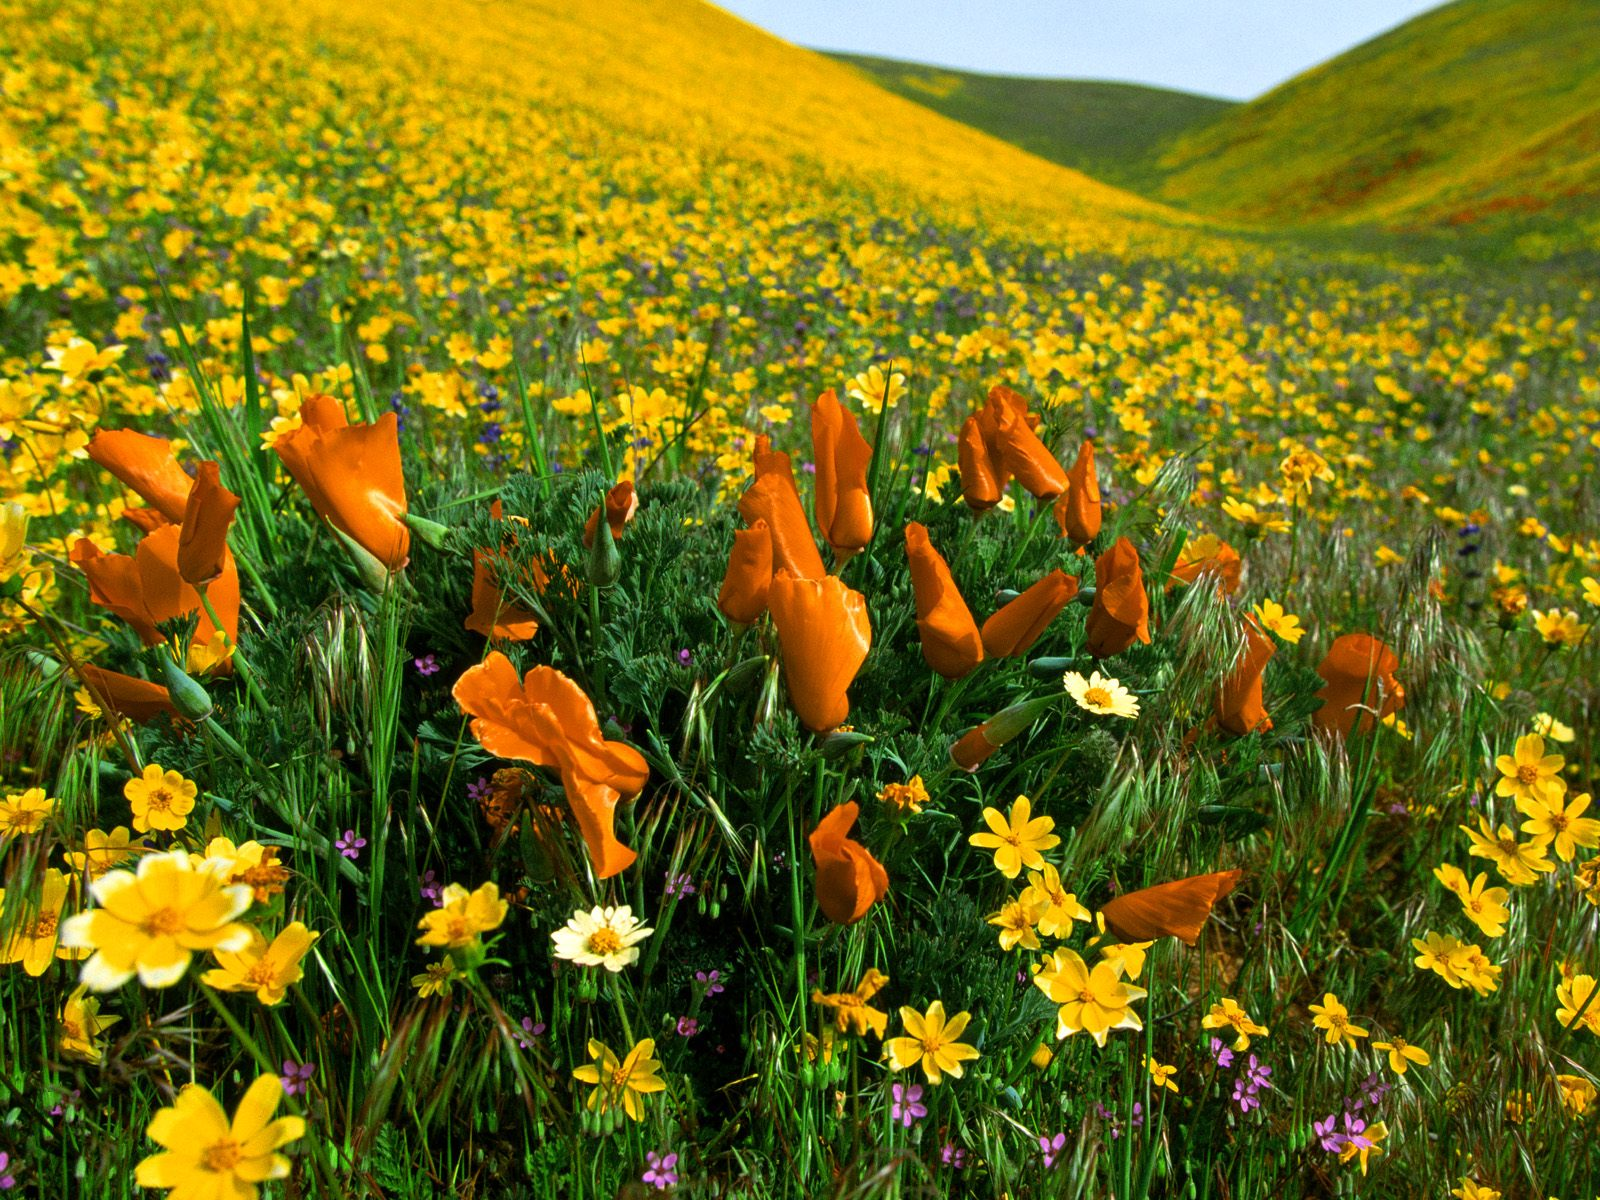 Poppies and Coreopsis